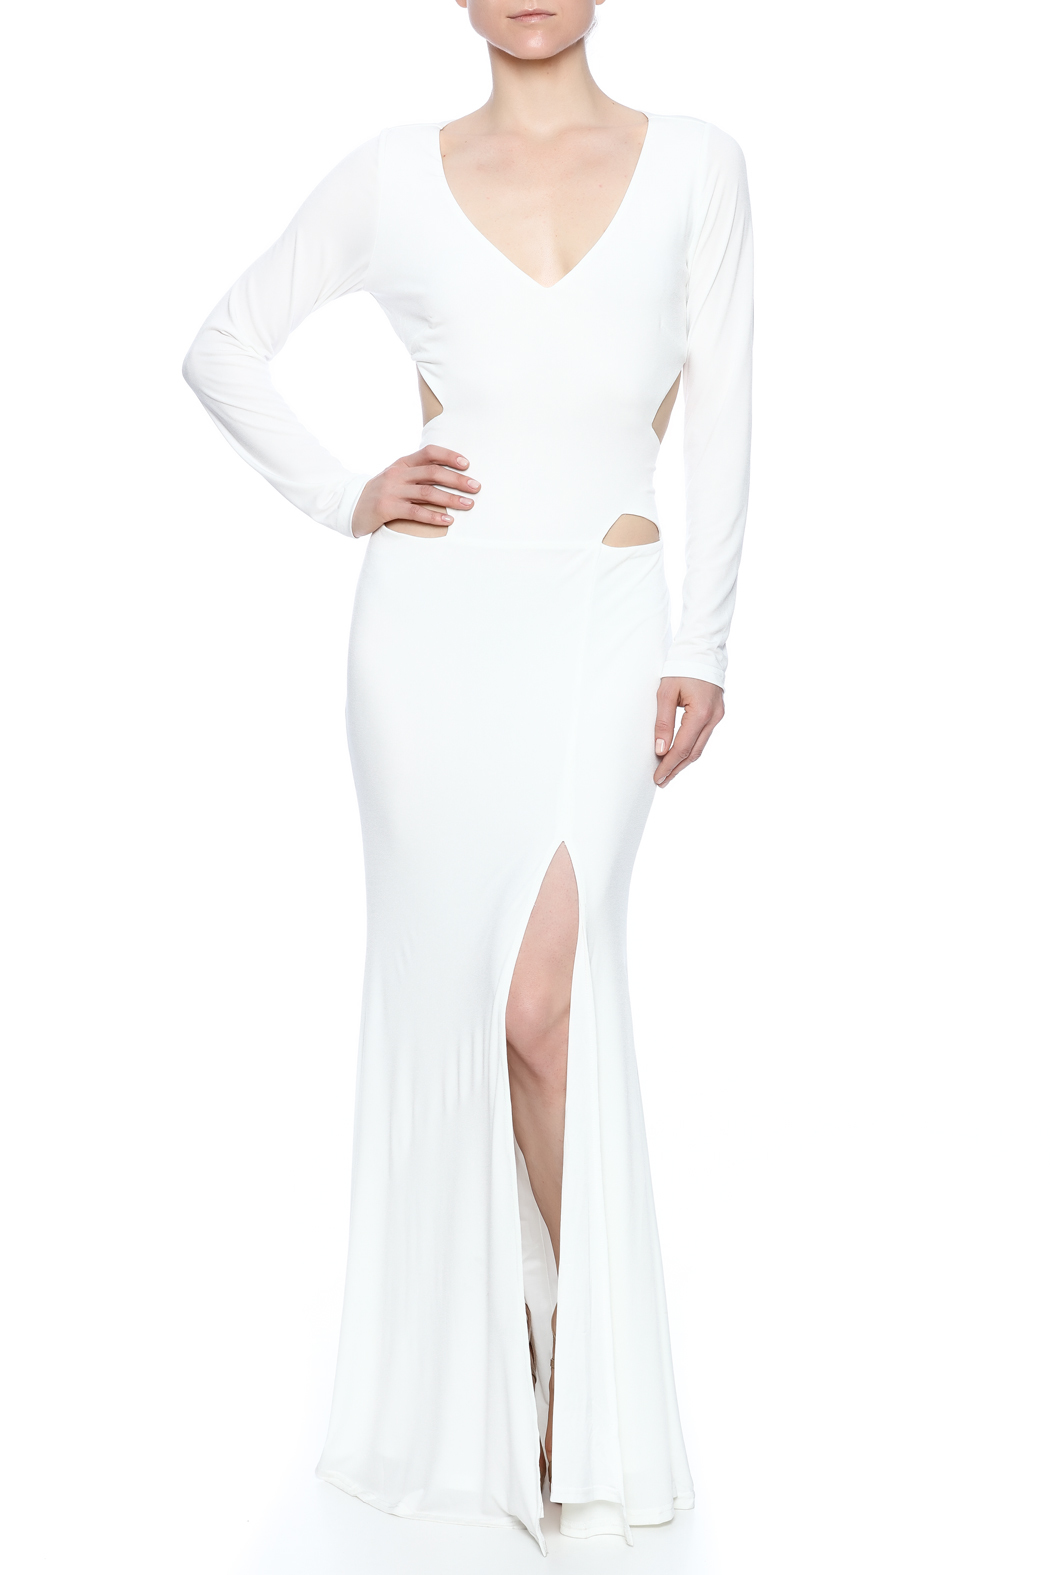 cq by cq White Cut Out Gown from South Carolina by Current Society ...